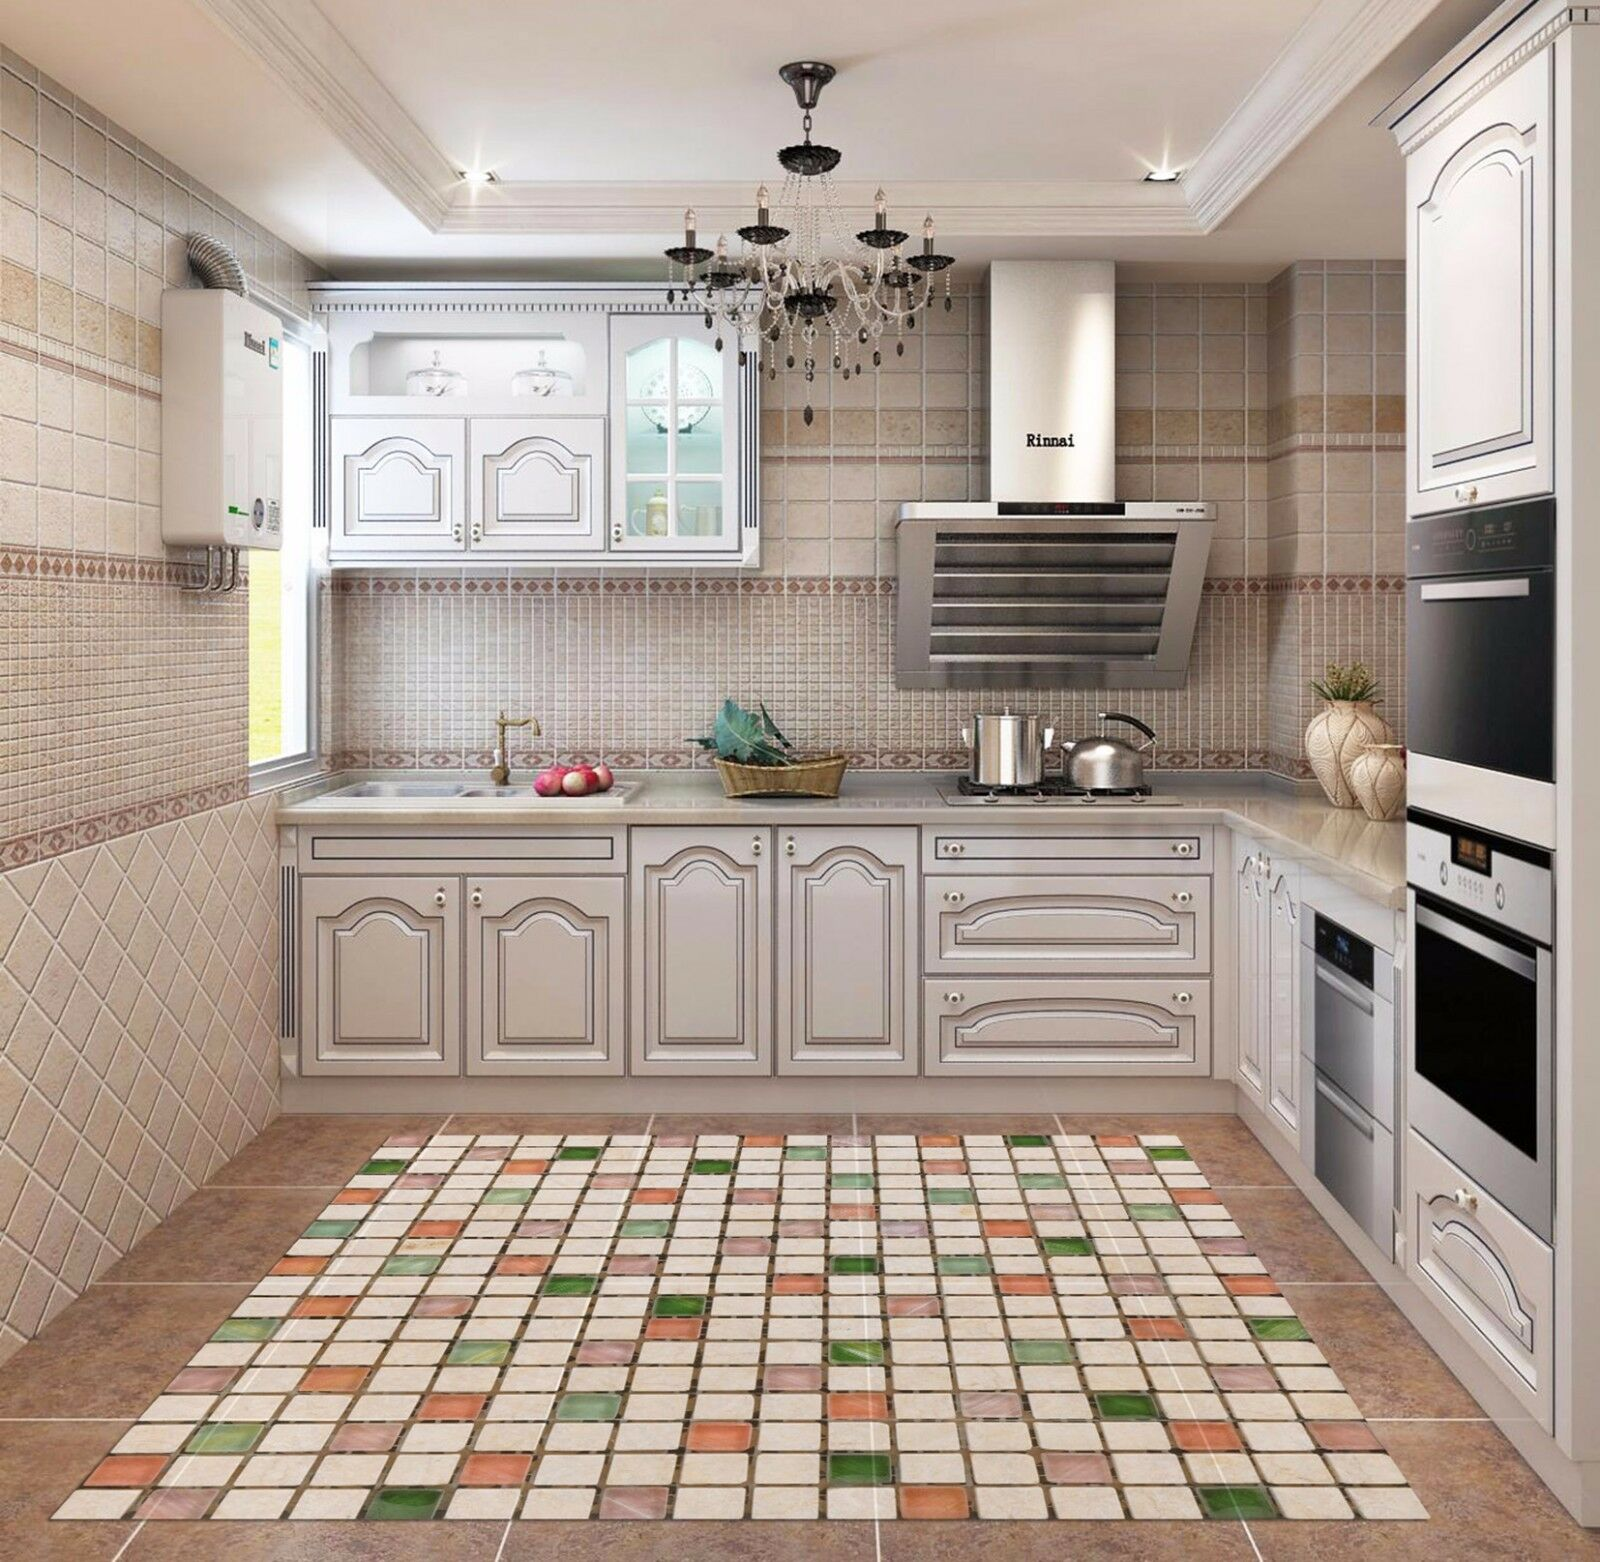 3D White Box 725 Kitchen Mat Floor Murals Wall Print Wall AJ WALLPAPER AU Kyra